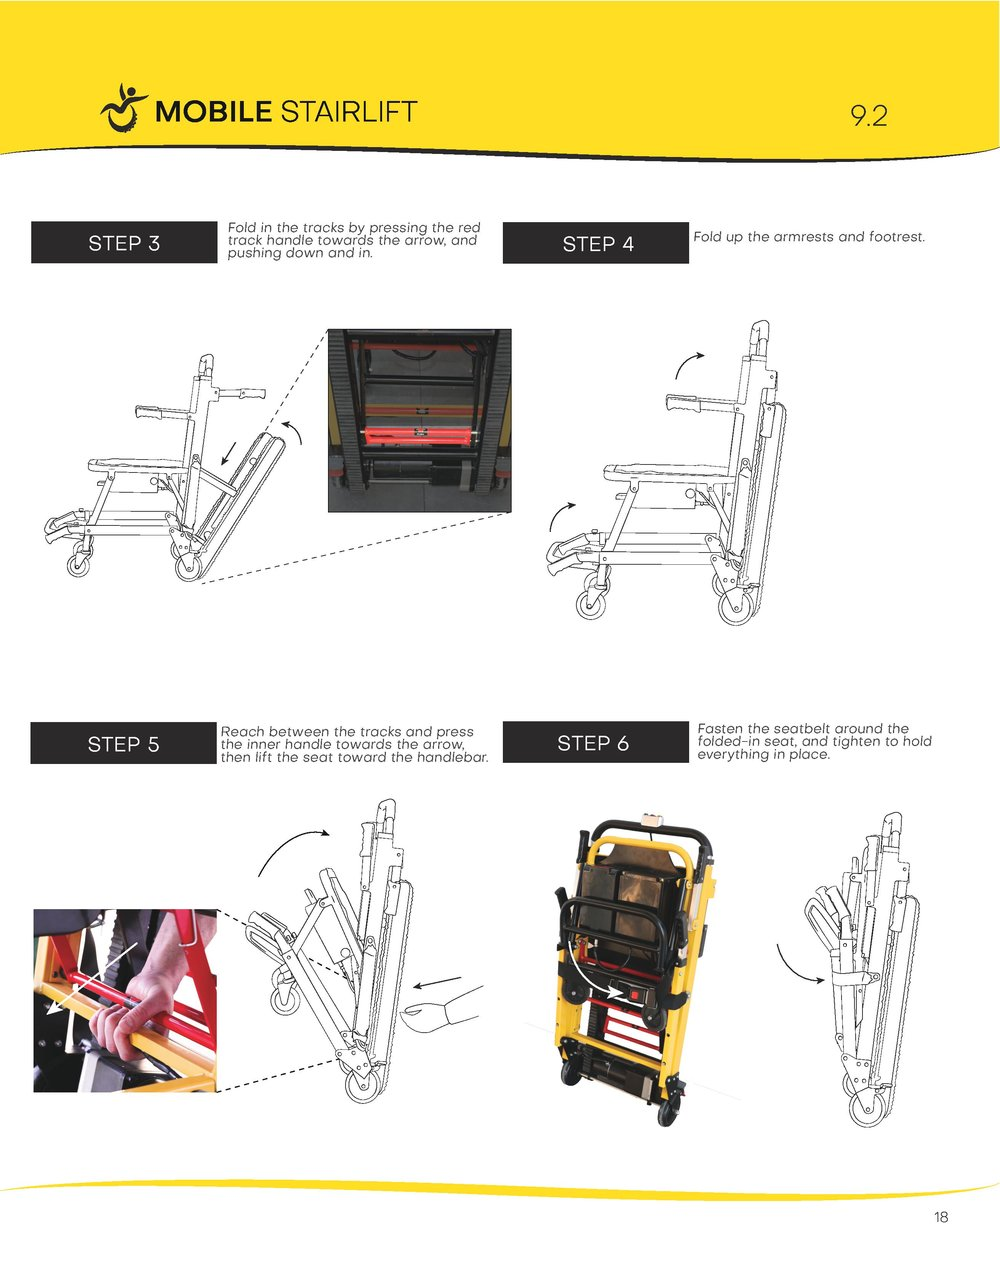 Mobile Stairlift Instruction Manual-19.jpg